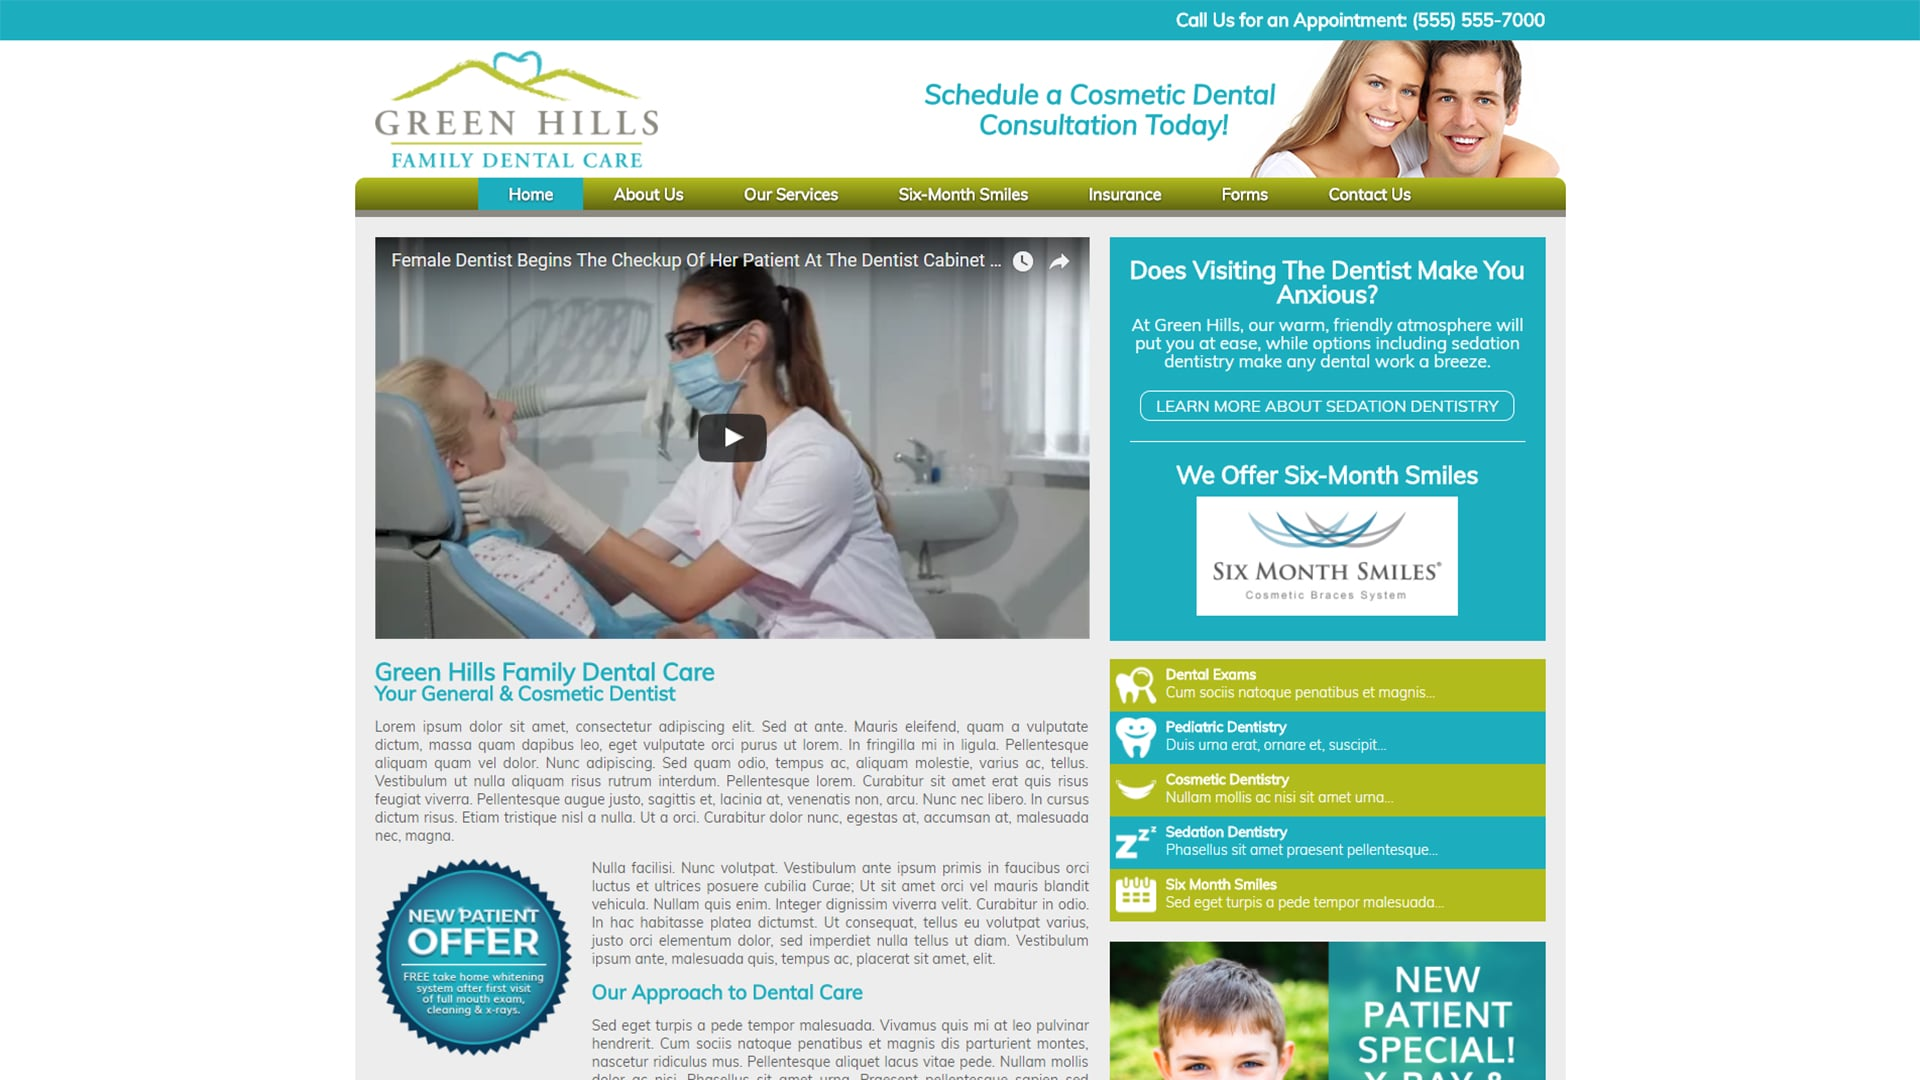 Michael Pothos Design - Dental Office Mockup Website